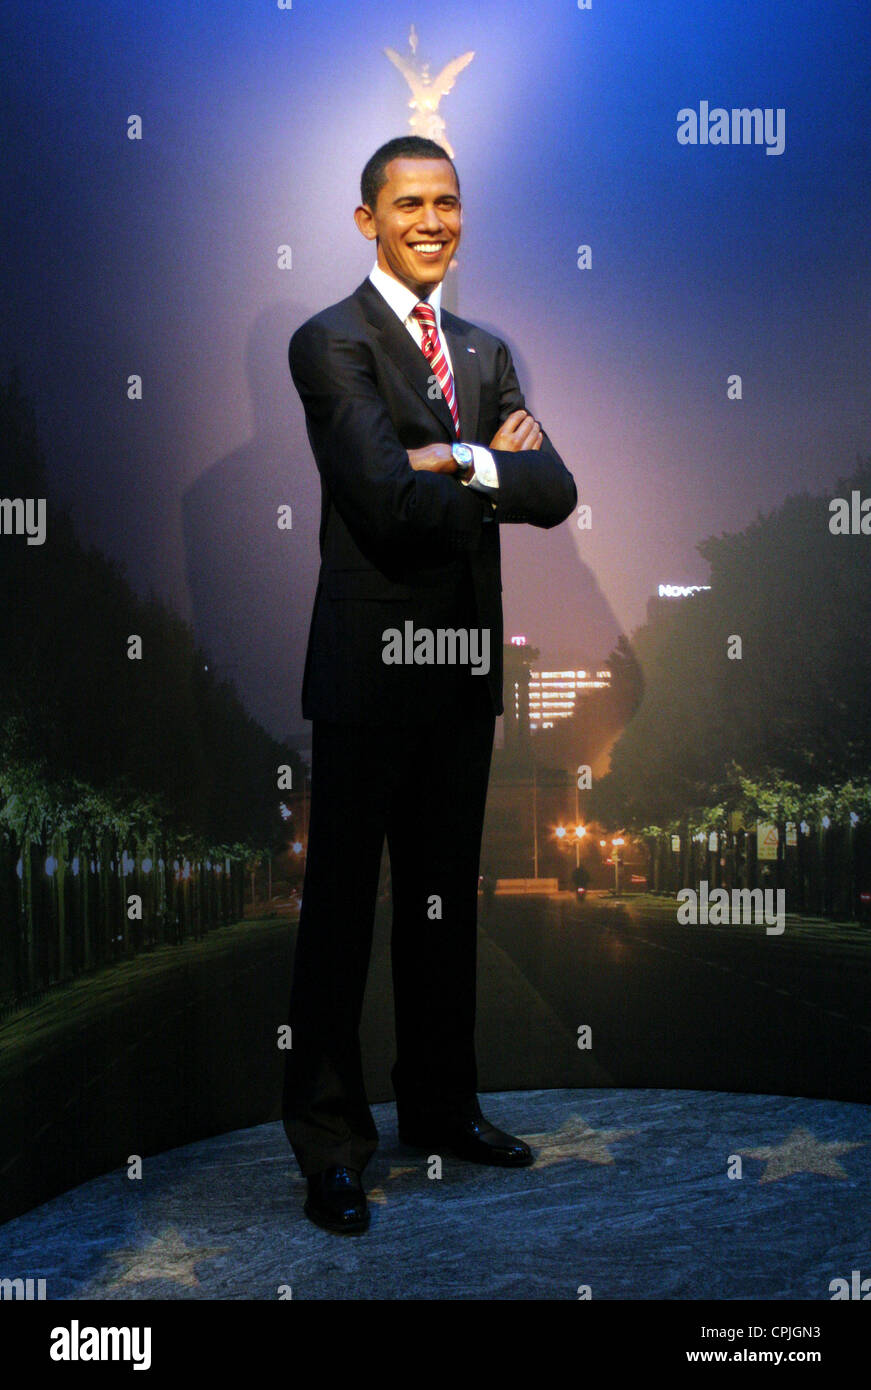 A wax figure of Barack Obama in the wax works Madame Tussauds, Berlin, Germany - Stock Image